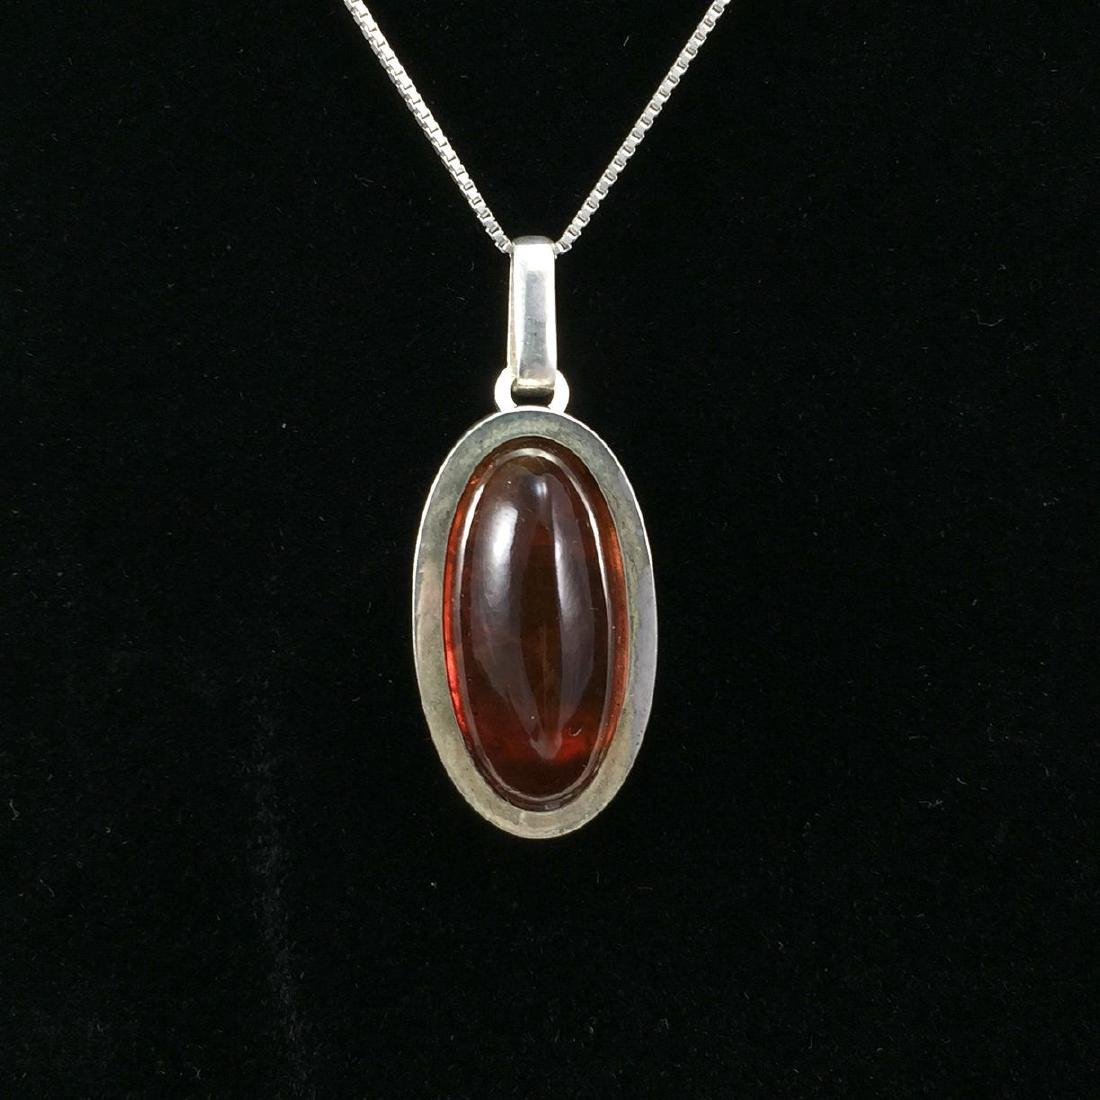 Baltic Amber and Sterling Silver Pendant Necklace by